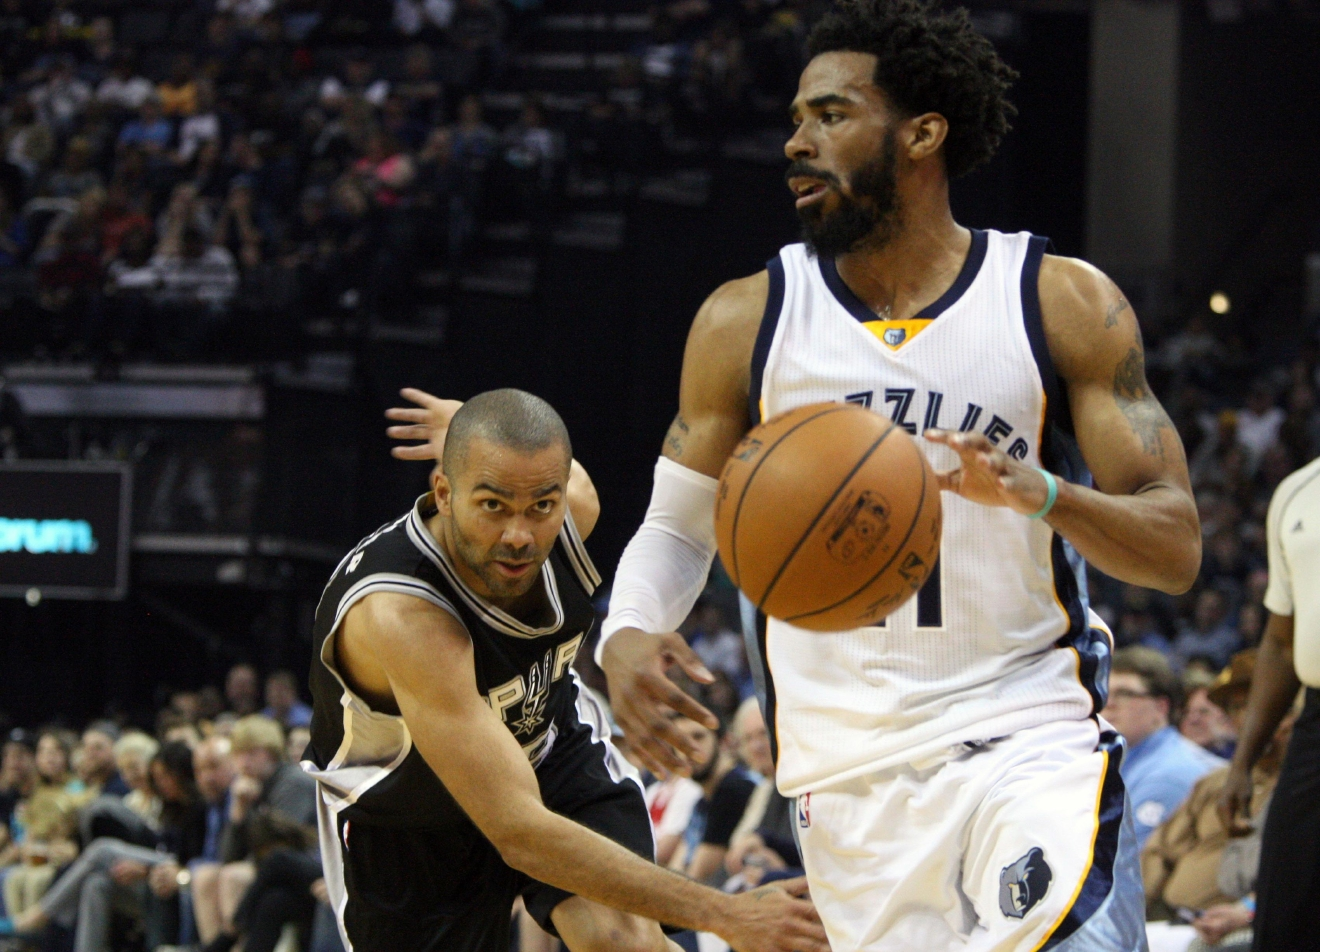 San Antonio Spurs' Tony Parker watches the ball as Memphis Grizzlies' Mike Conley looks for an open shot in the first half of an NBA basketball game Saturday, March 18, 2017, in Memphis, Tenn. (AP Photo/Karen Pulfer Focht)